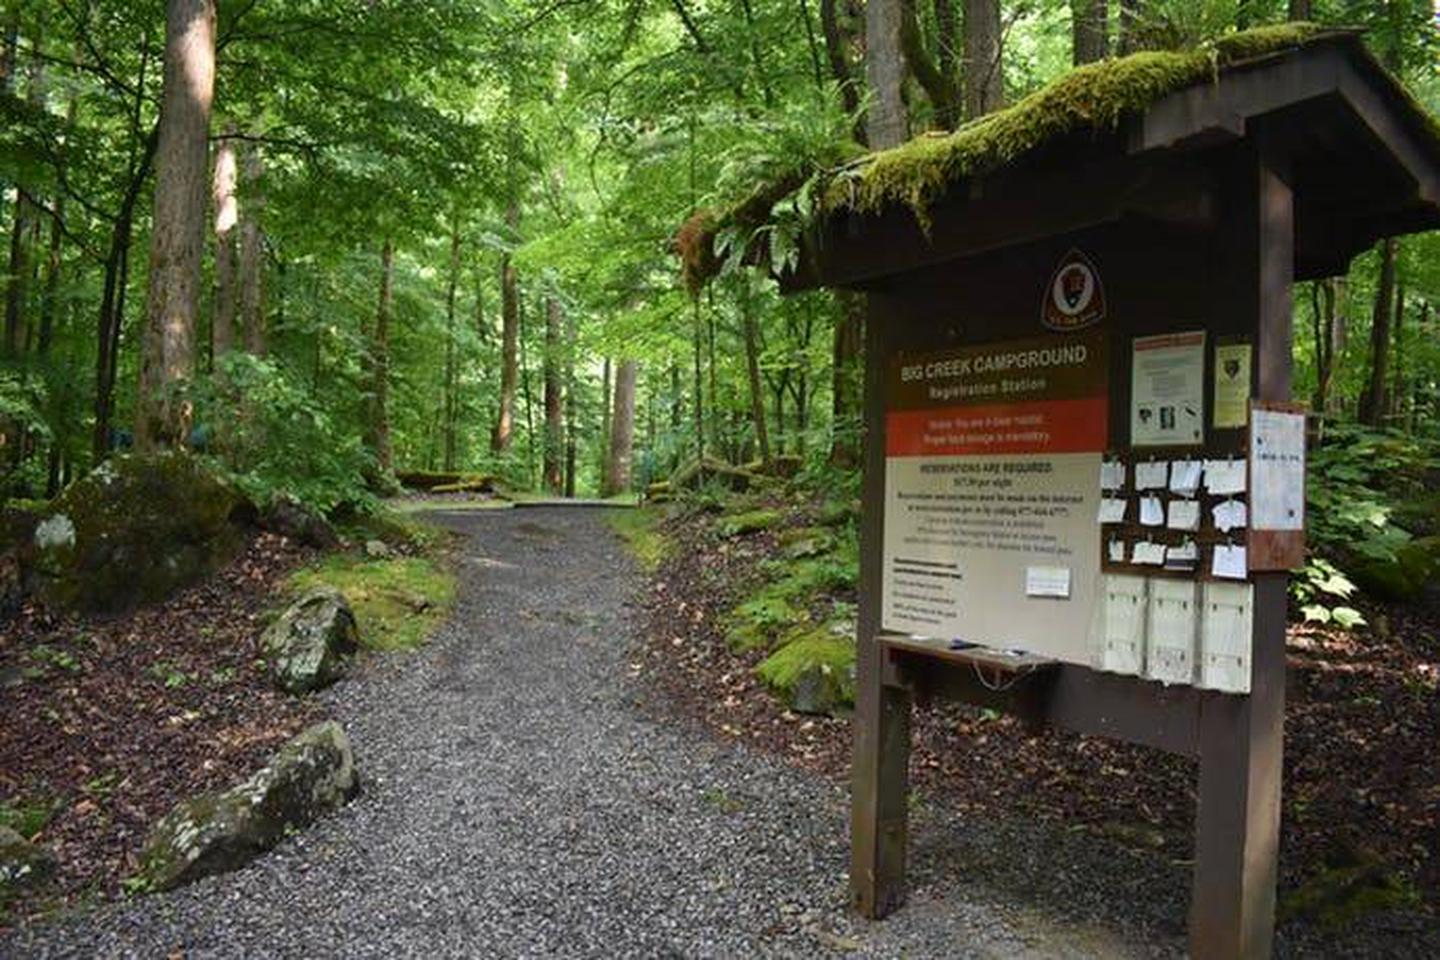 Registration BoardBig Creek is a reservation only campground. Find your camping permit on the registration board or see a camp host.